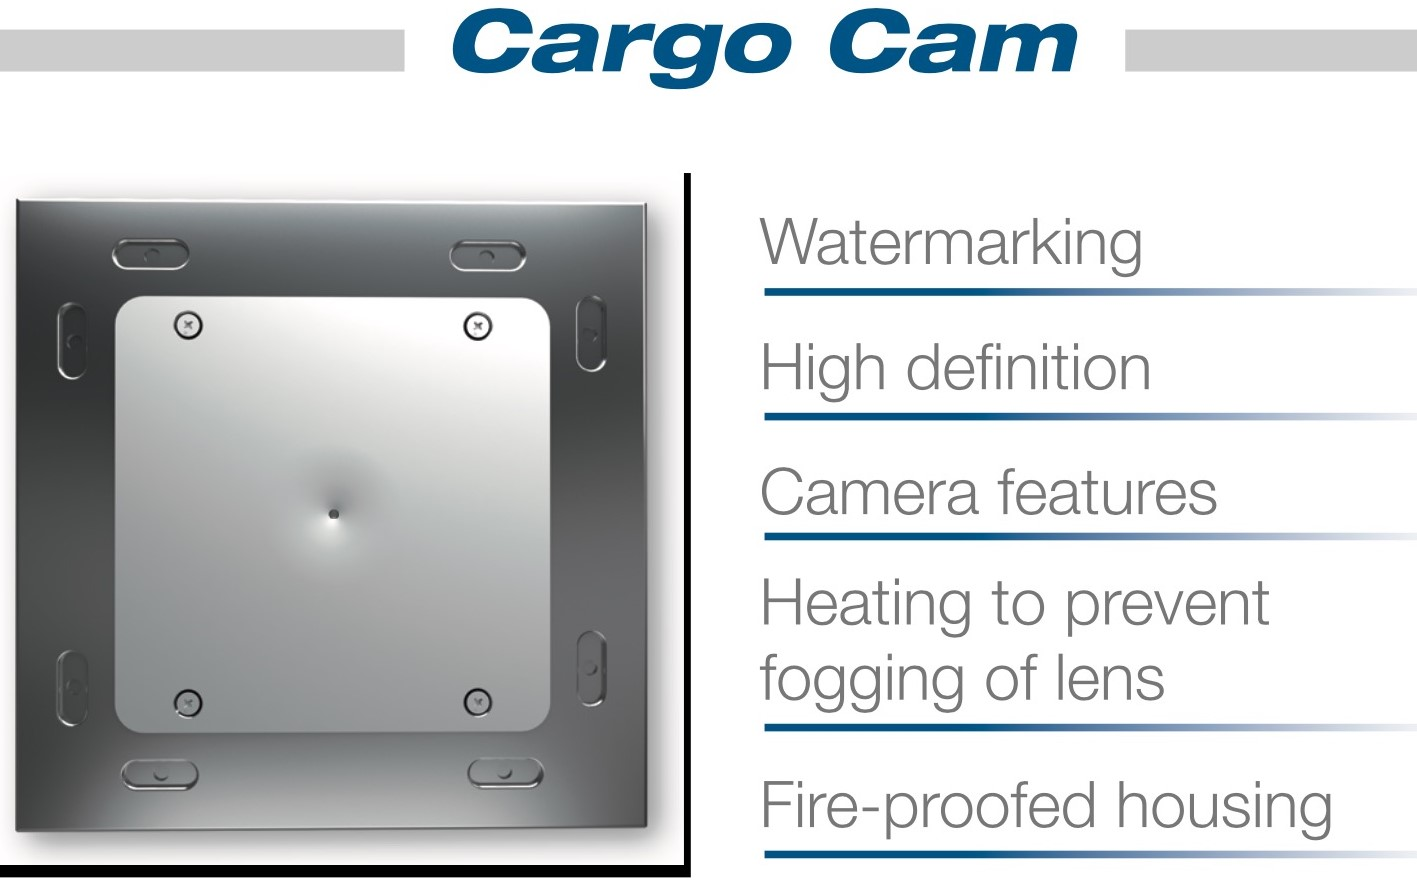 The cargo camera system offers different technical features for this challenging environment.